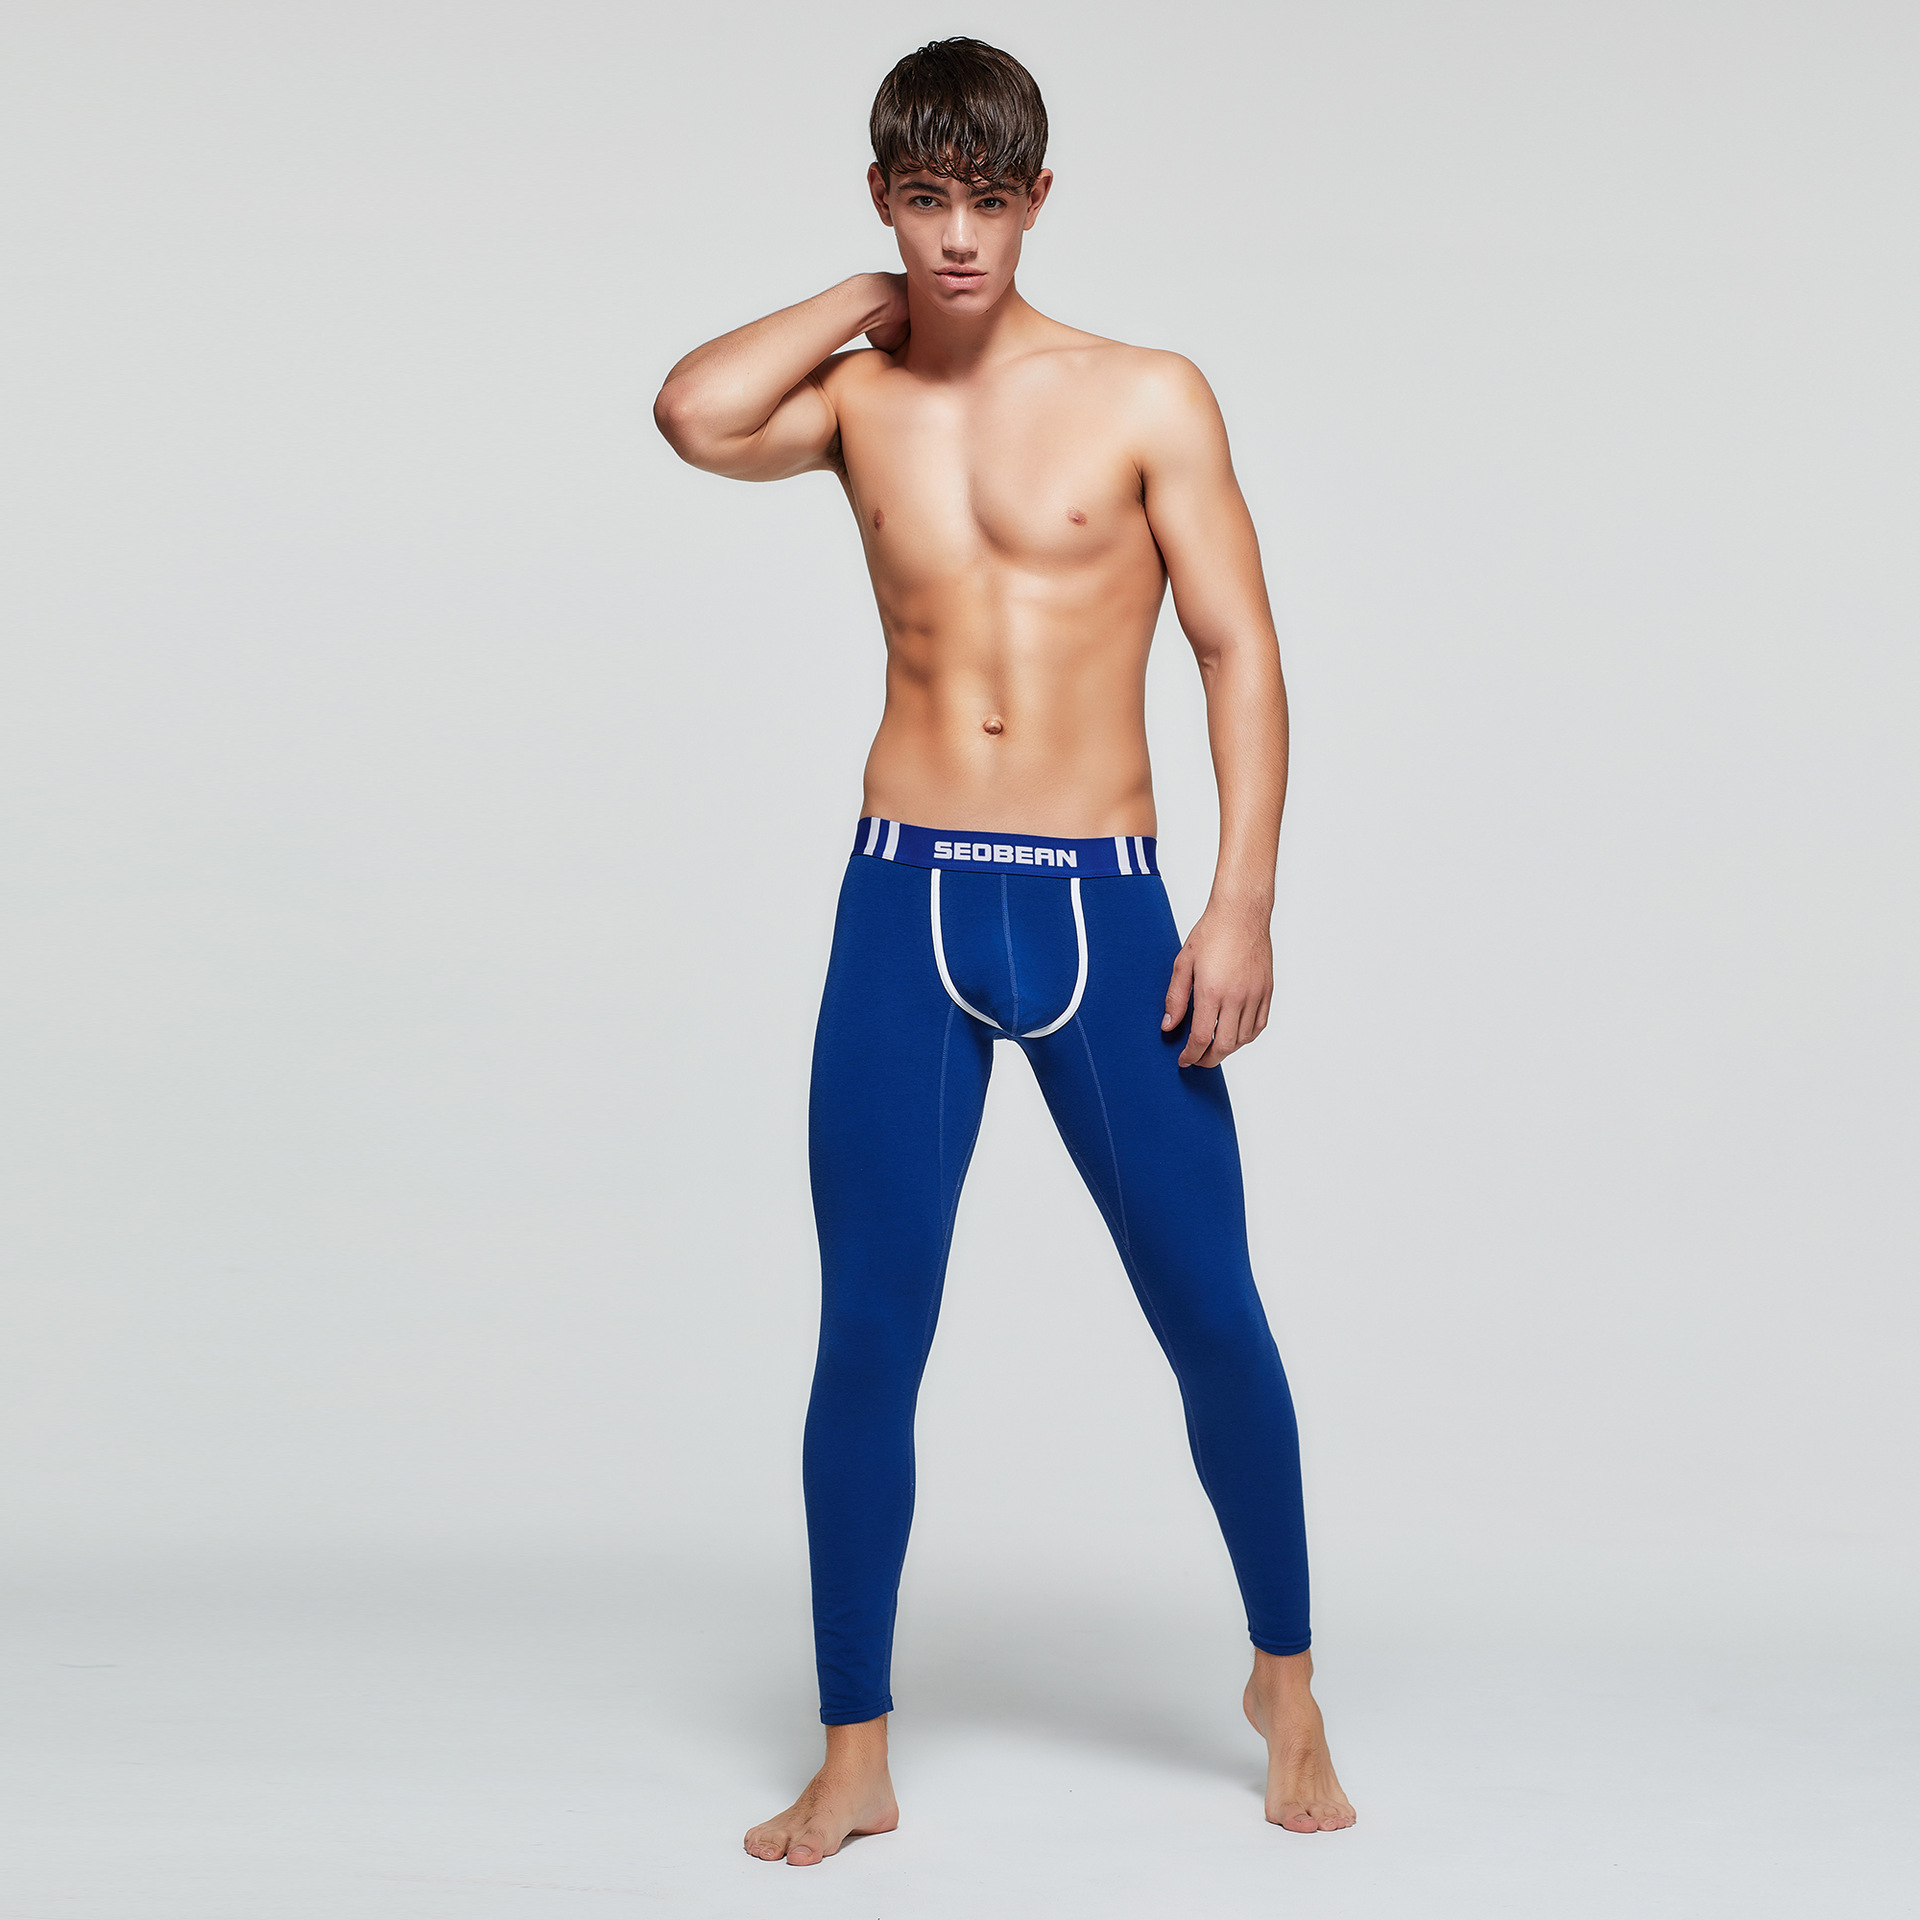 Autumn Men Sweatpant Stretch Compression Skinny Legging Tights Running Jogger Fitness Gym Workout Athletic Sport Pant Activewear